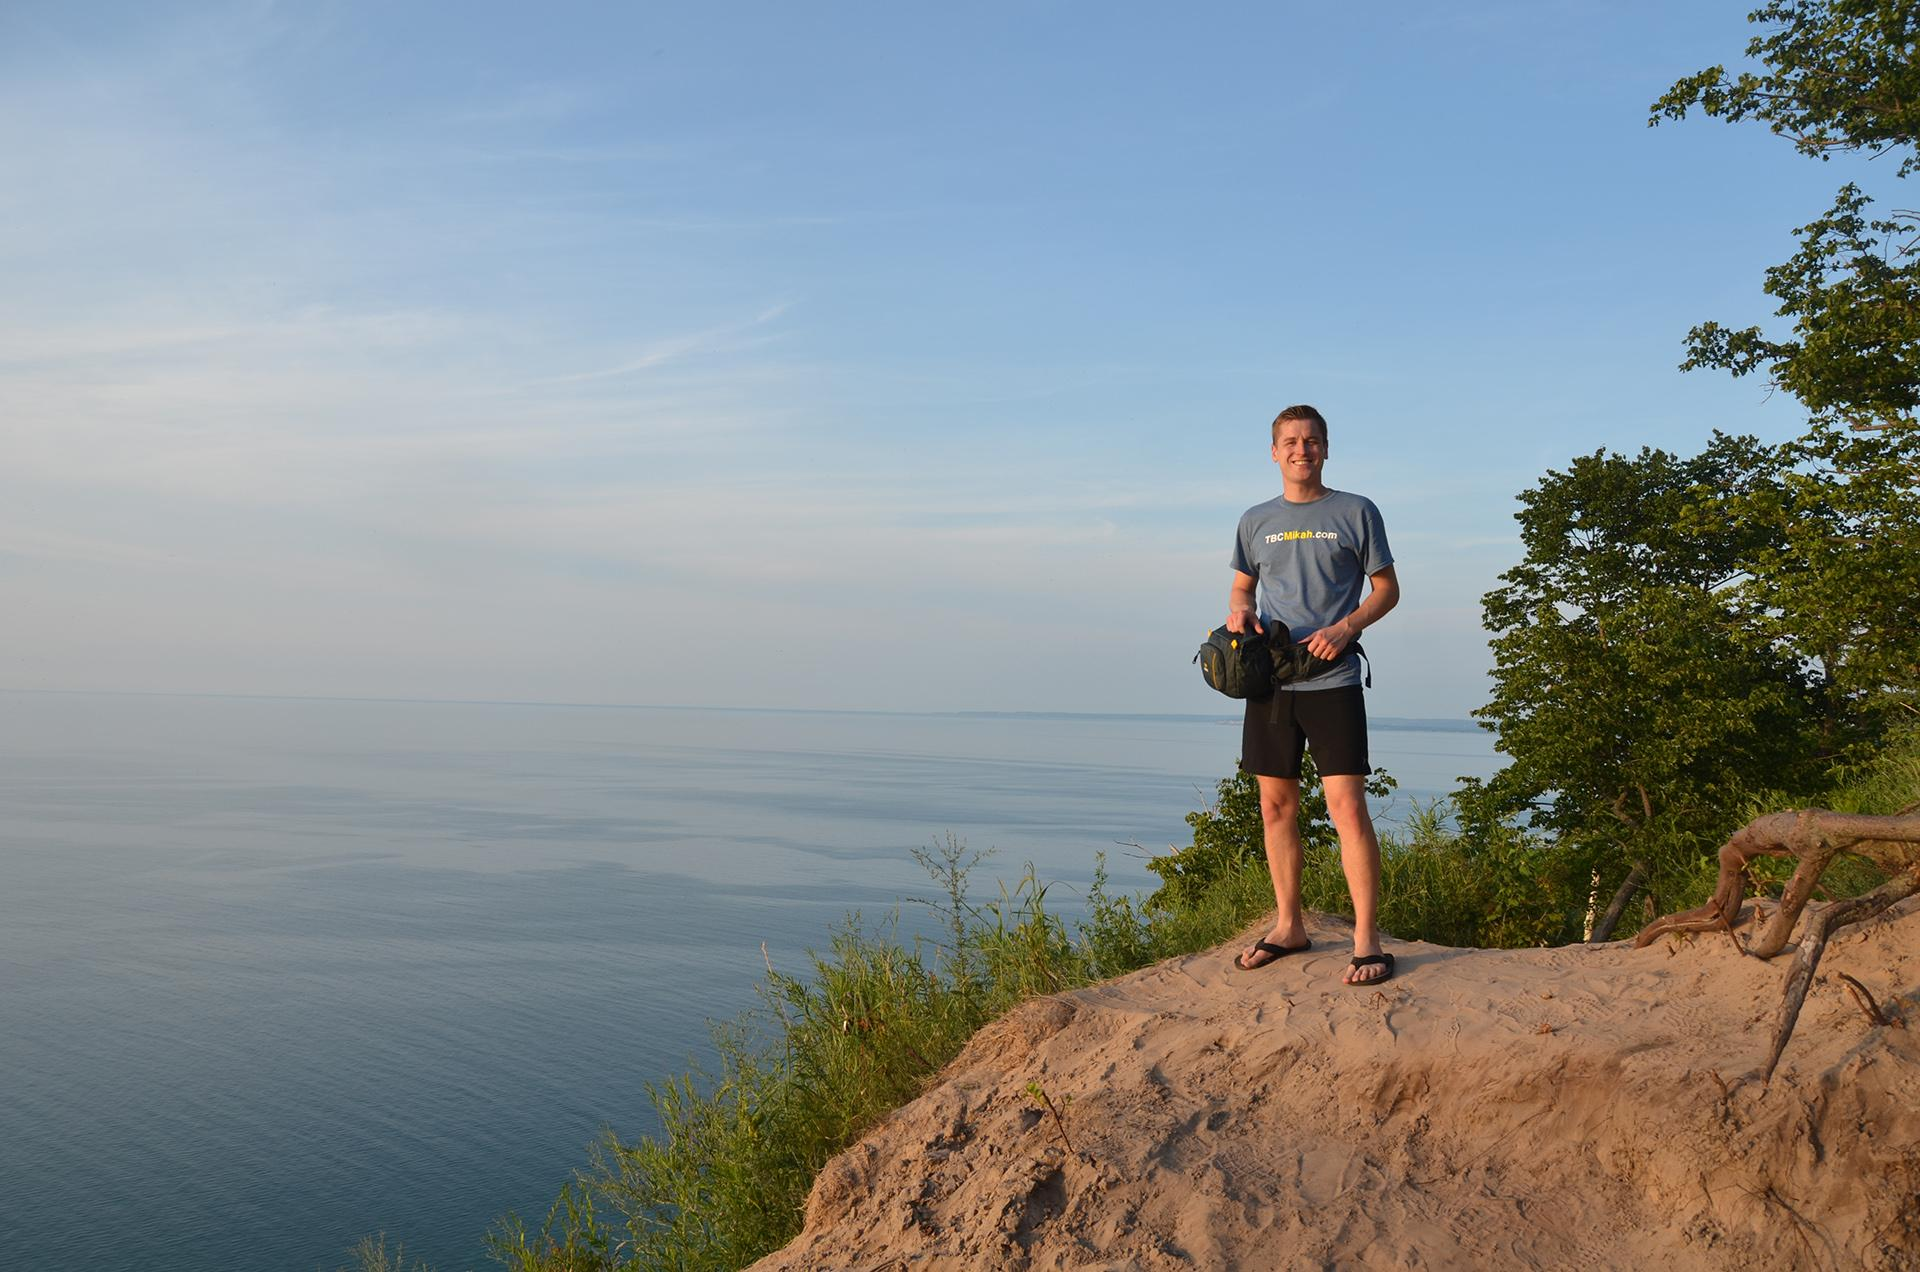 Mikah Meyer visits Sleeping Bear Dunes National Lakeshore in Empire, Michigan. (Courtesy of Mikah Meyer)